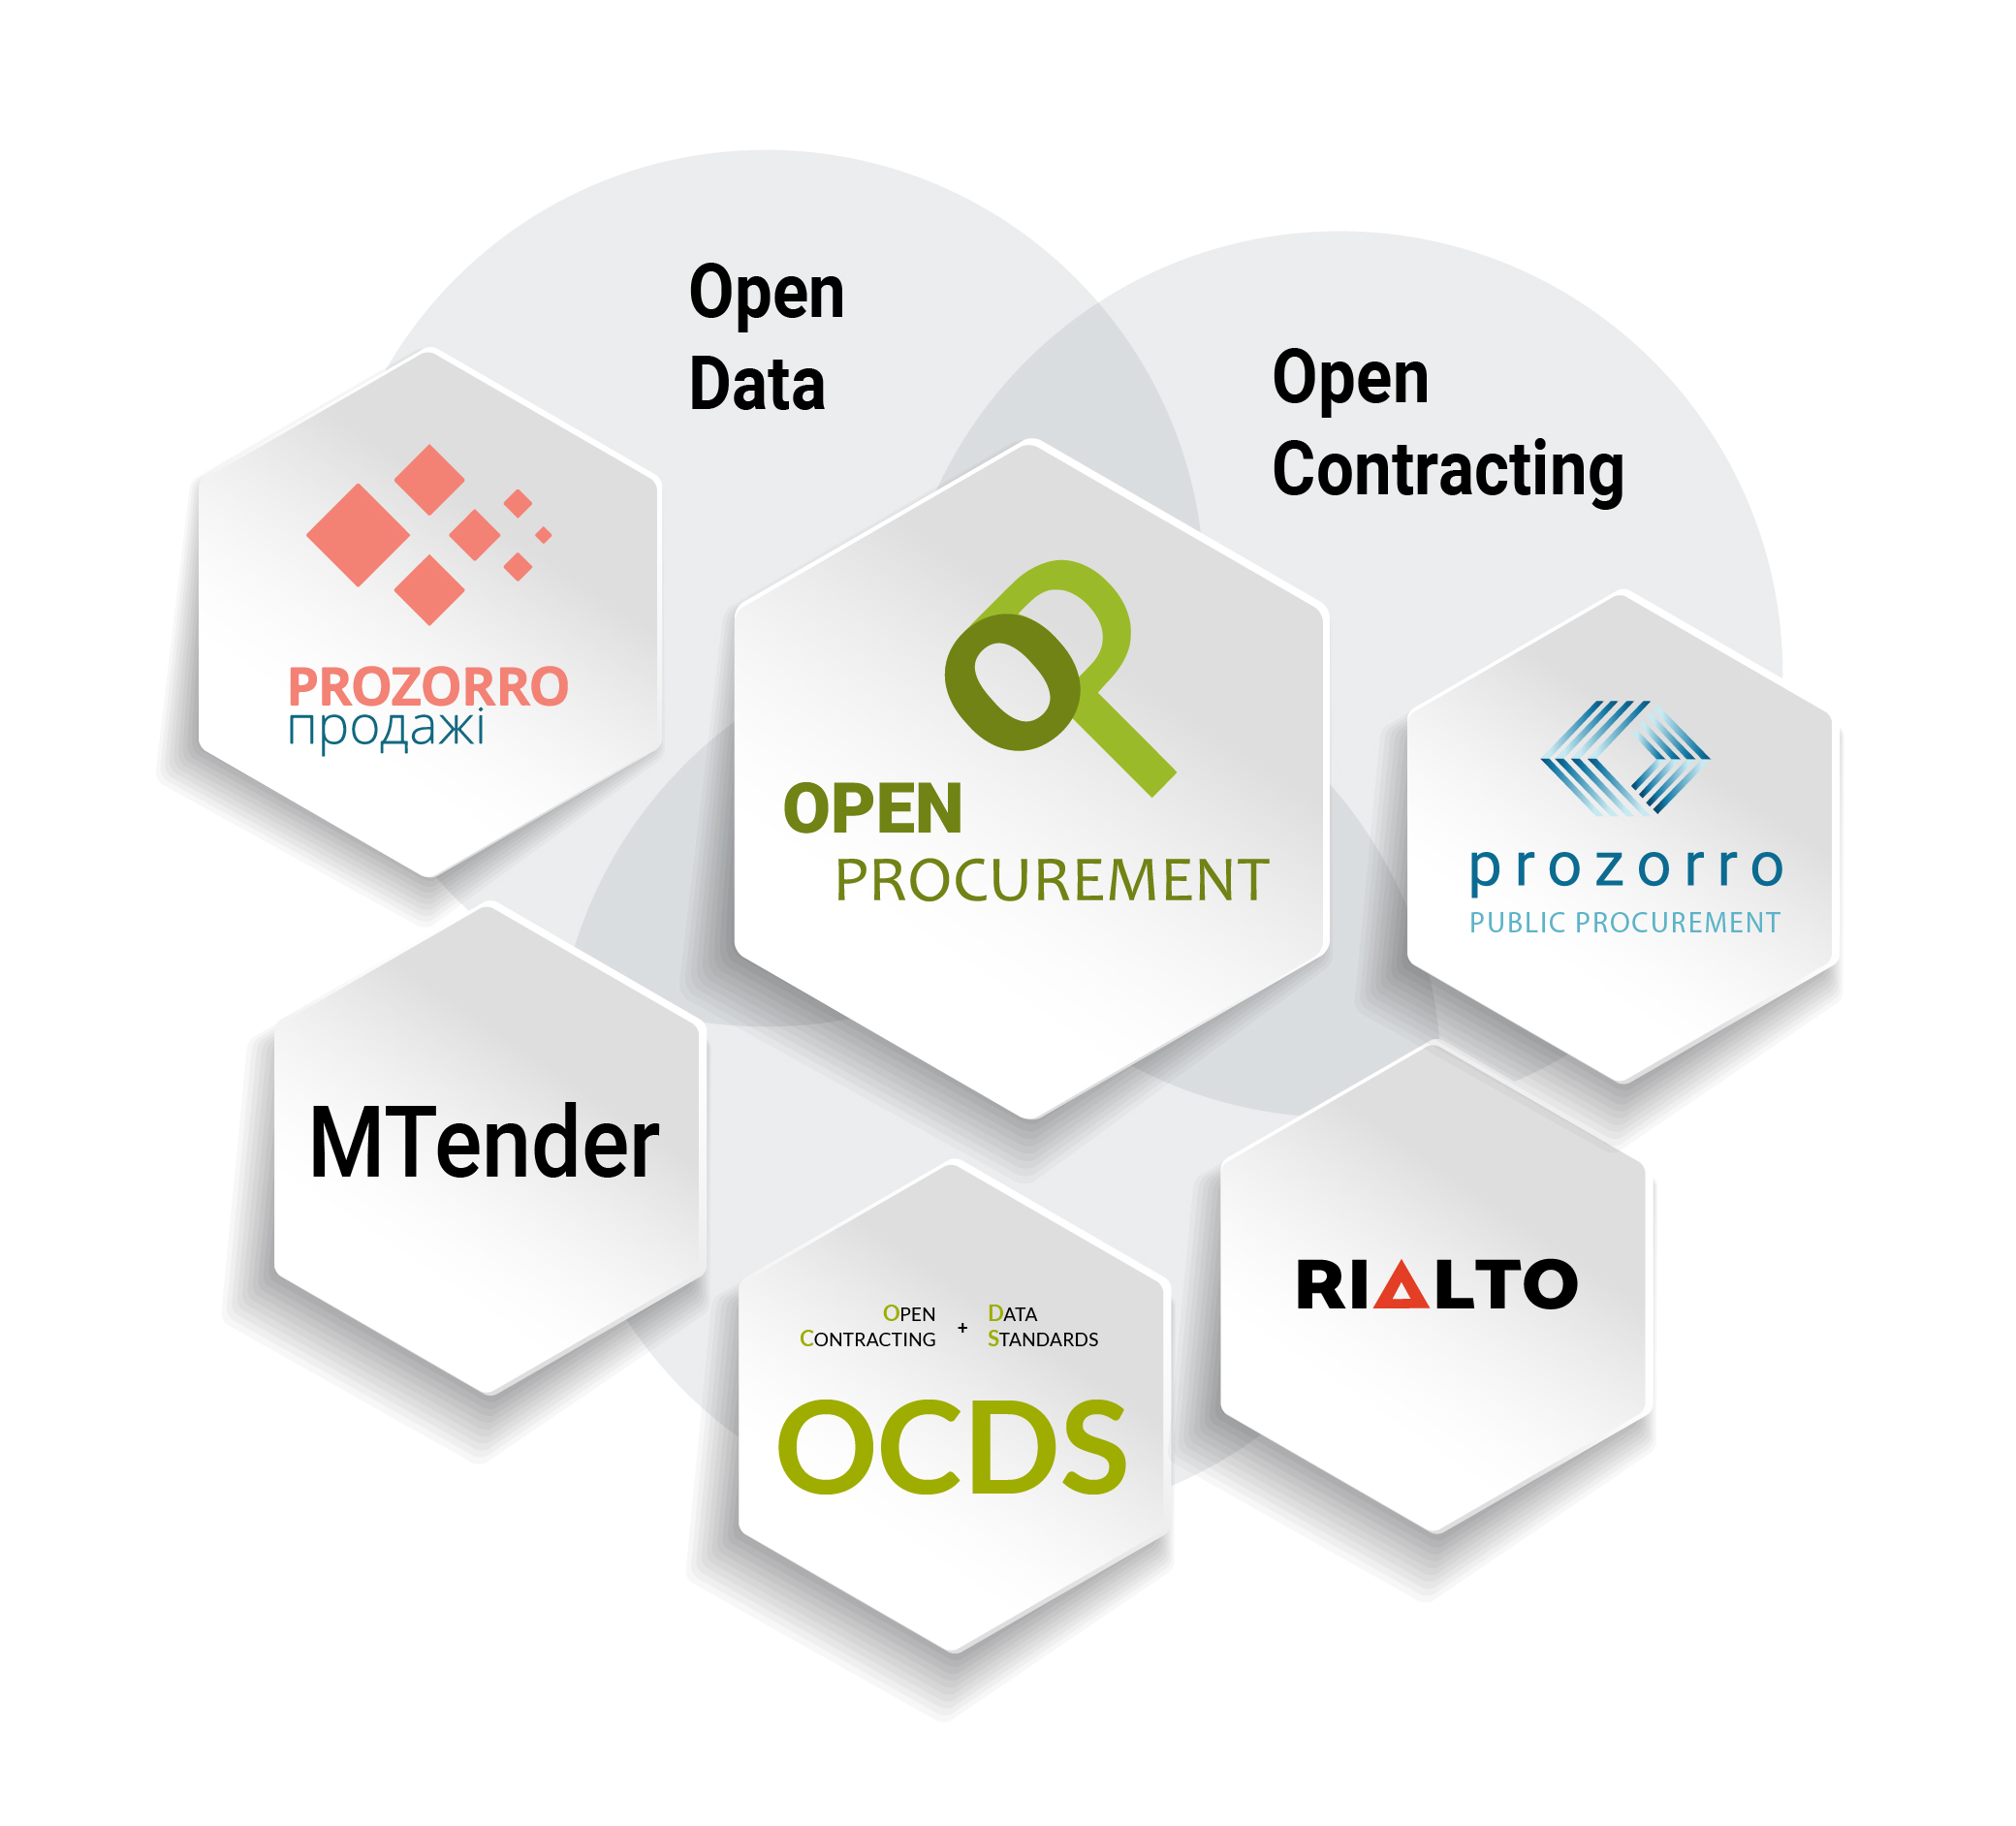 Open Procurement_icons.jpg